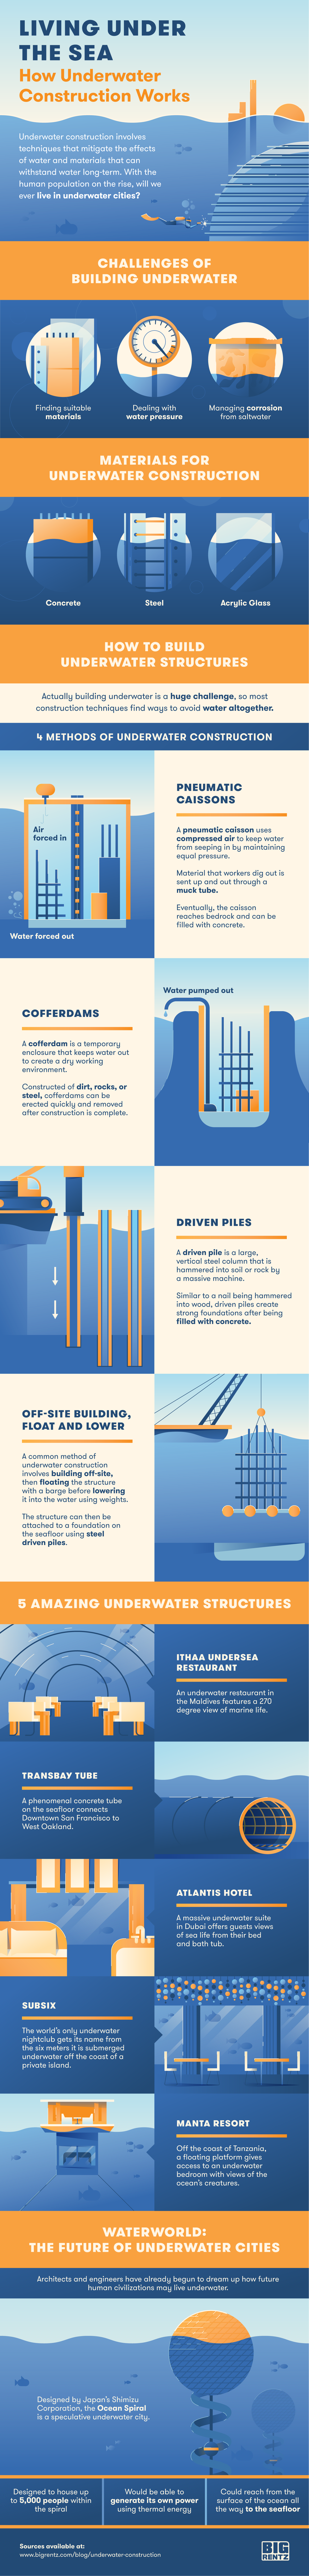 An infographic exploring underwater construction including several underwater structures.